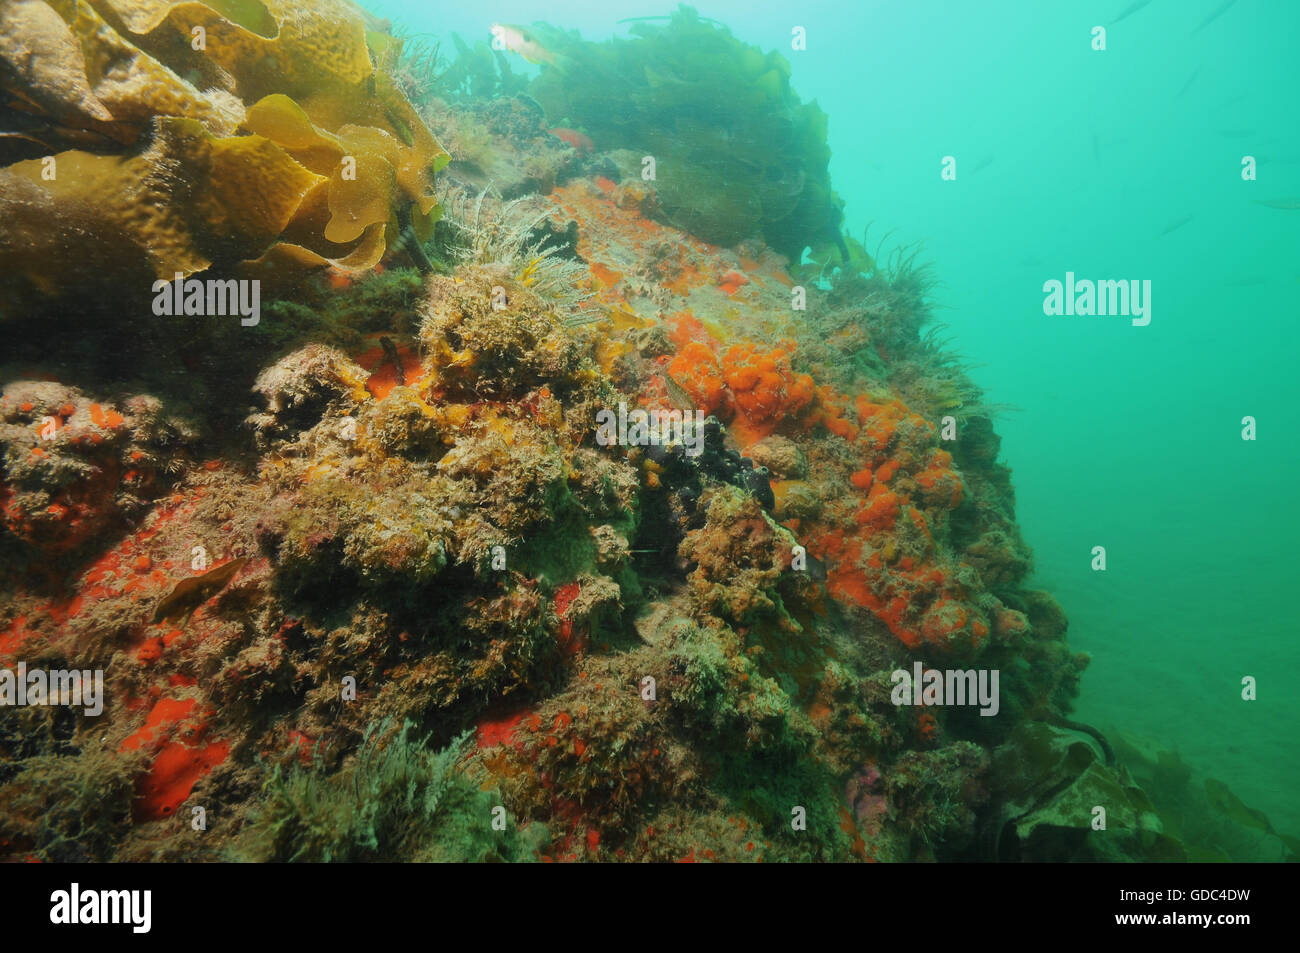 Wall covered with sponges and other invertebrate life forms Stock Photo